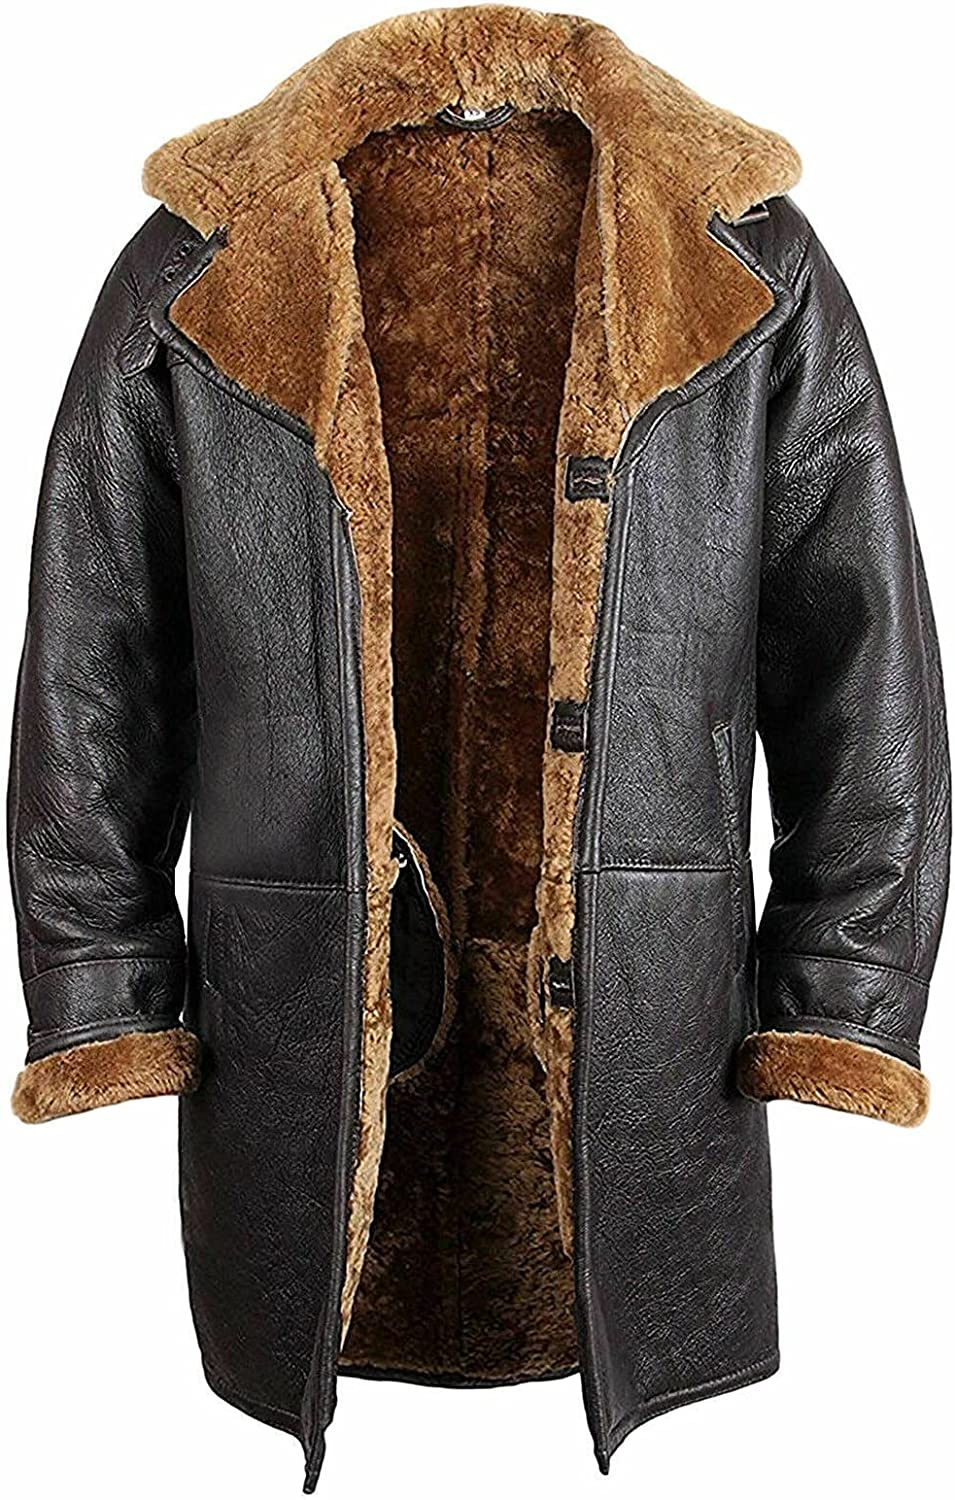 B3 Bomber Shearling Real Leather Trench Coat Jacket For Men Winter Fashion Clothing Raf Aviation WW2